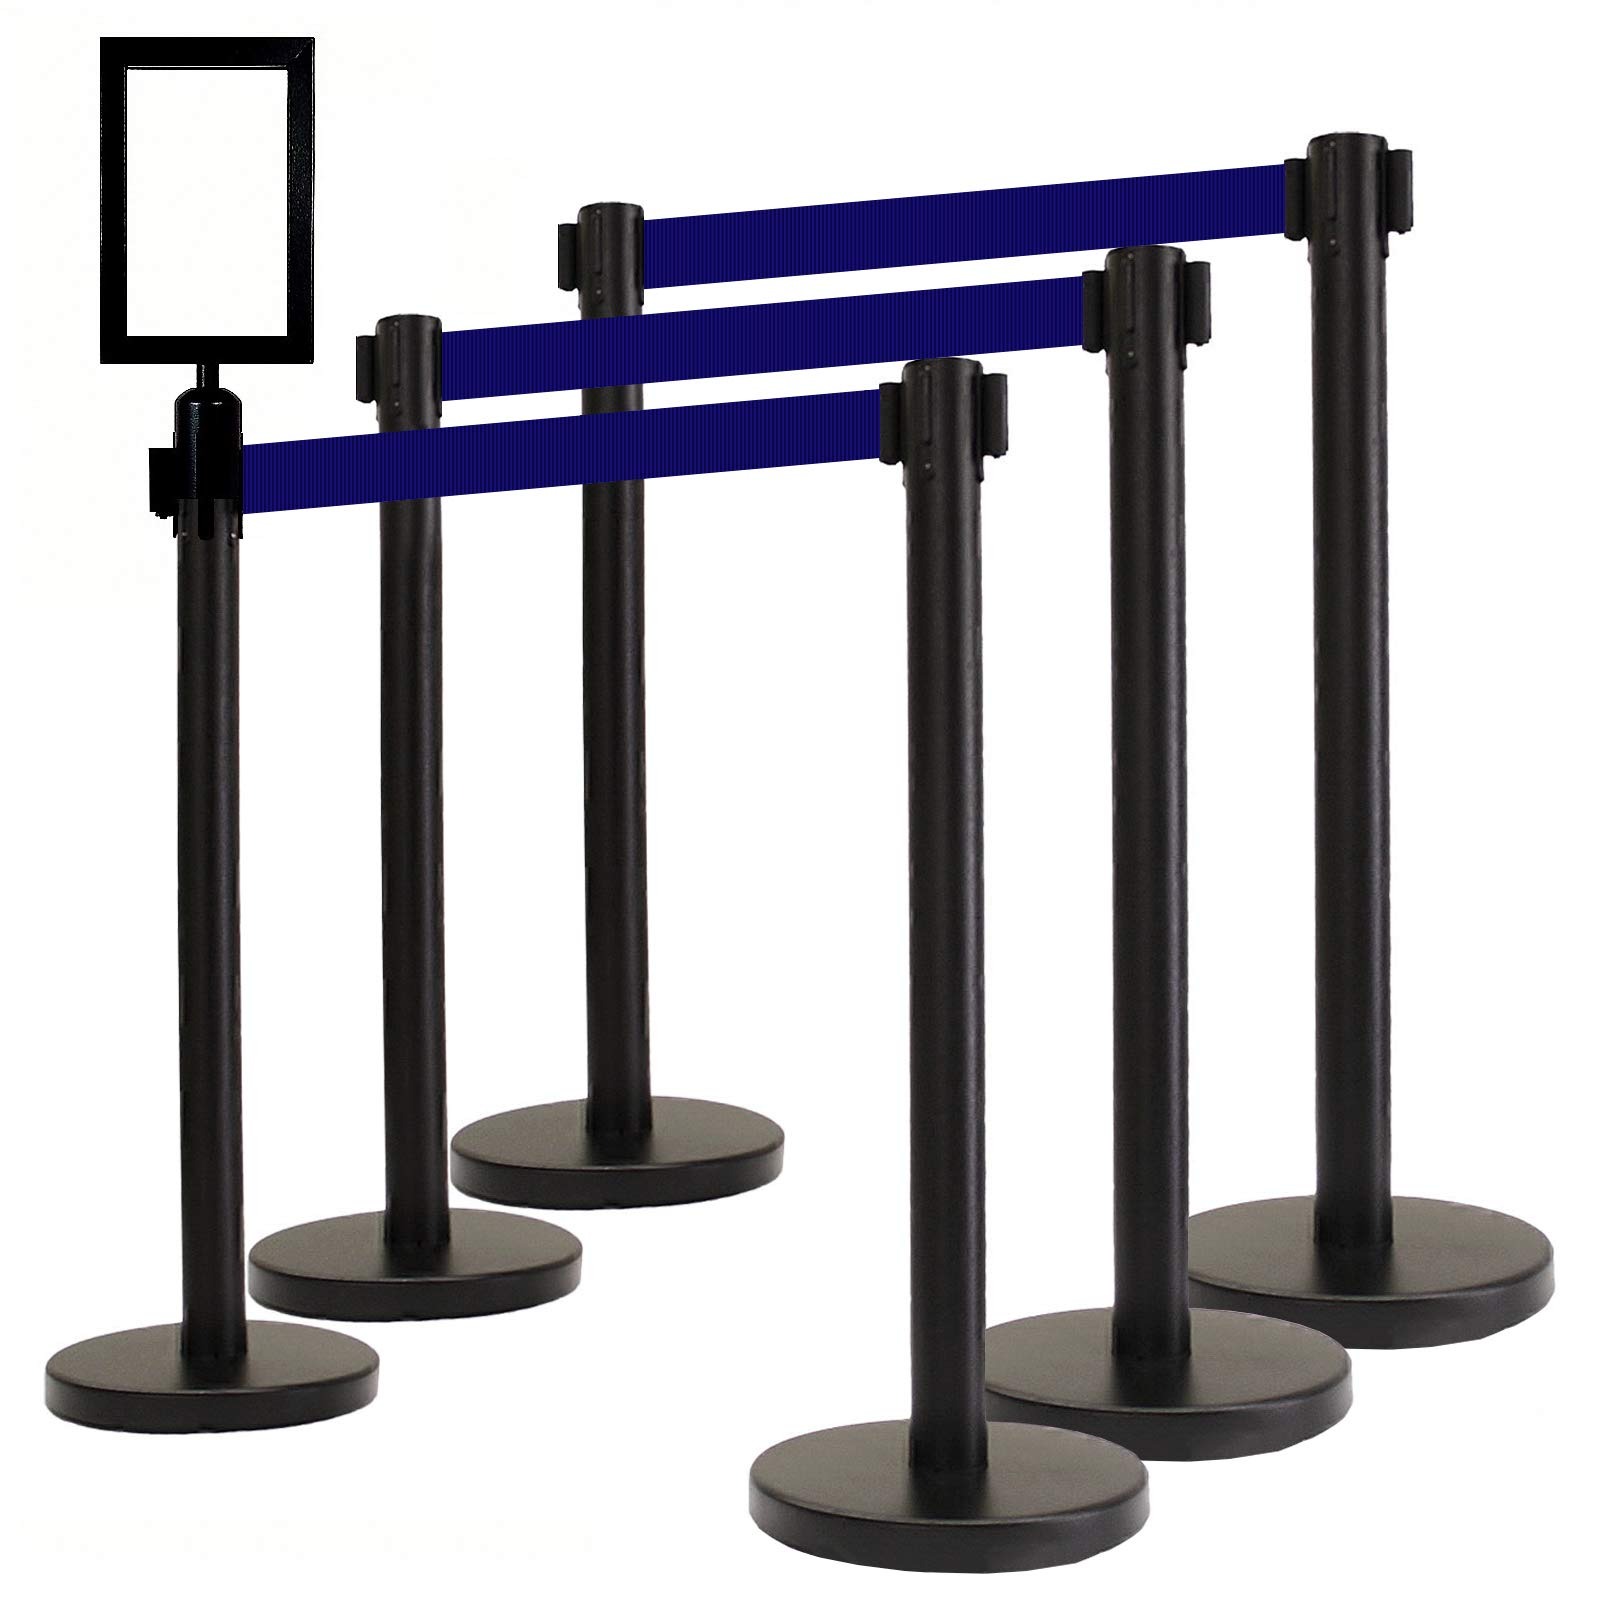 VIP Crowd Control Retractable Belt Queue Safety Stanchion Barrier Set,36'' Ht, 78'' Blue Belt + Sign Frame + Wall Bracket (6 Posts+SFrame+WBracket)